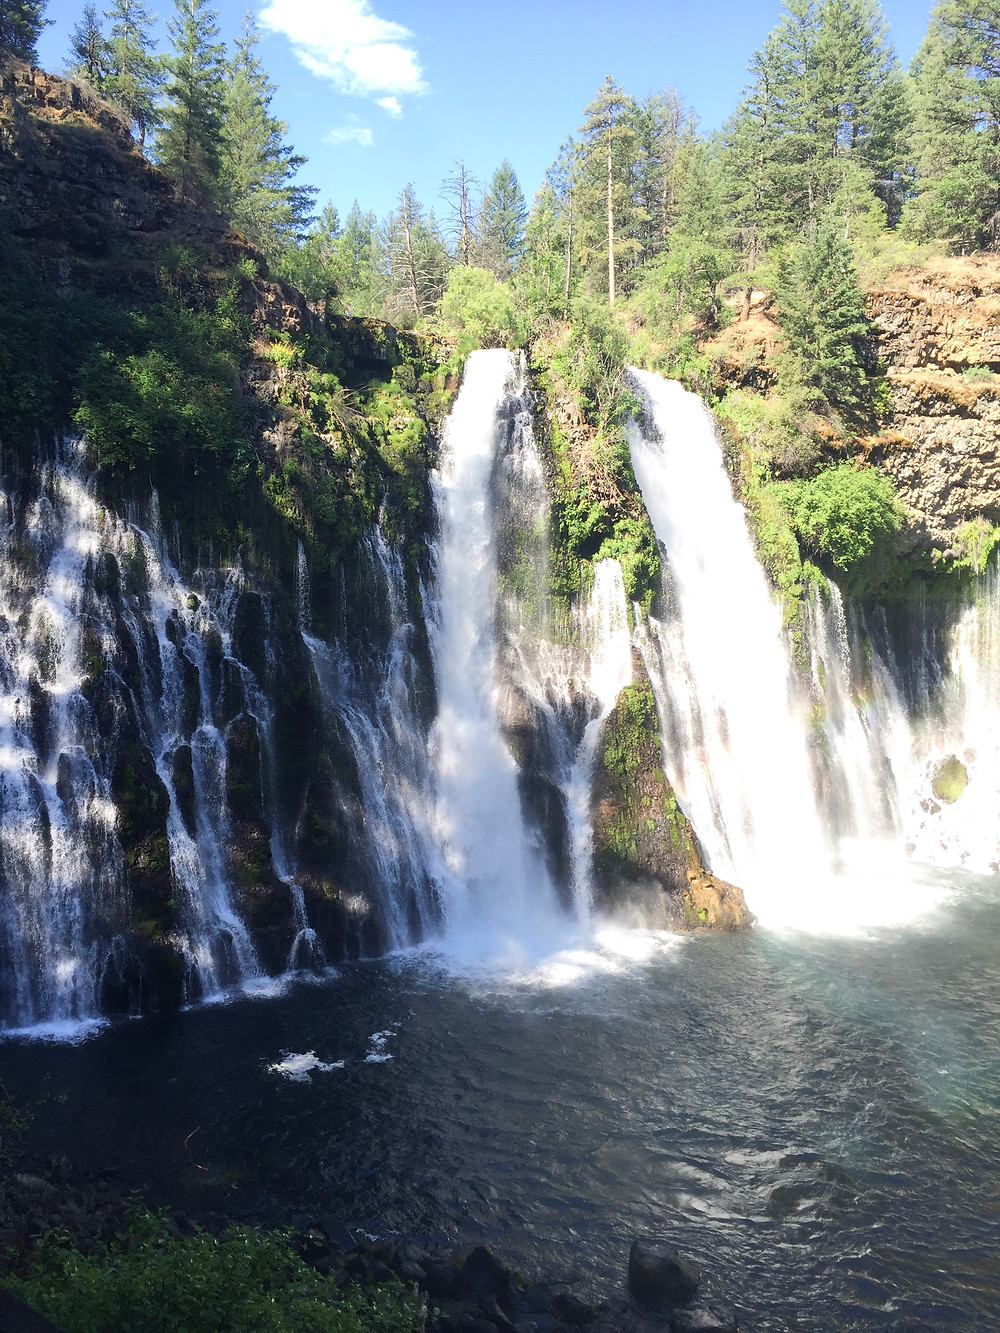 Waterfall at McArthur-Burney Falls